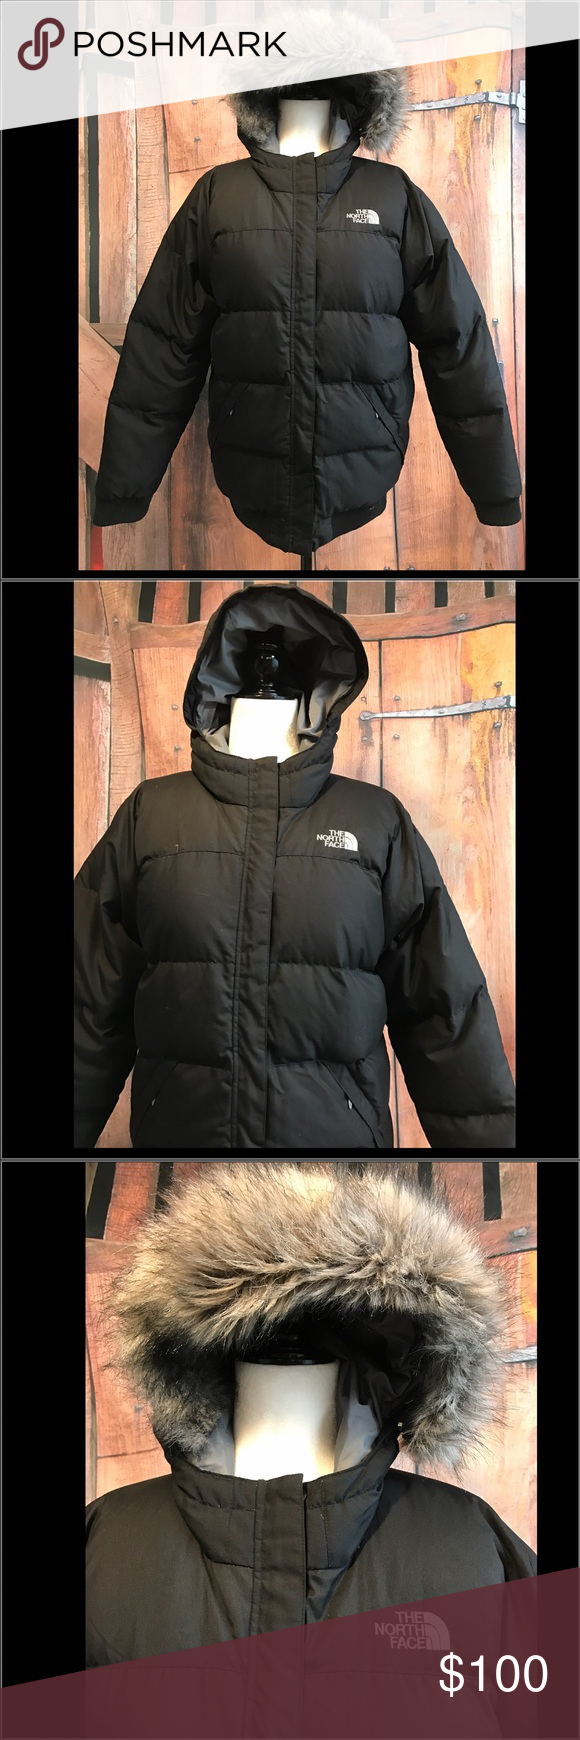 The North Face 550 Puffer Coat w/ detachable hood